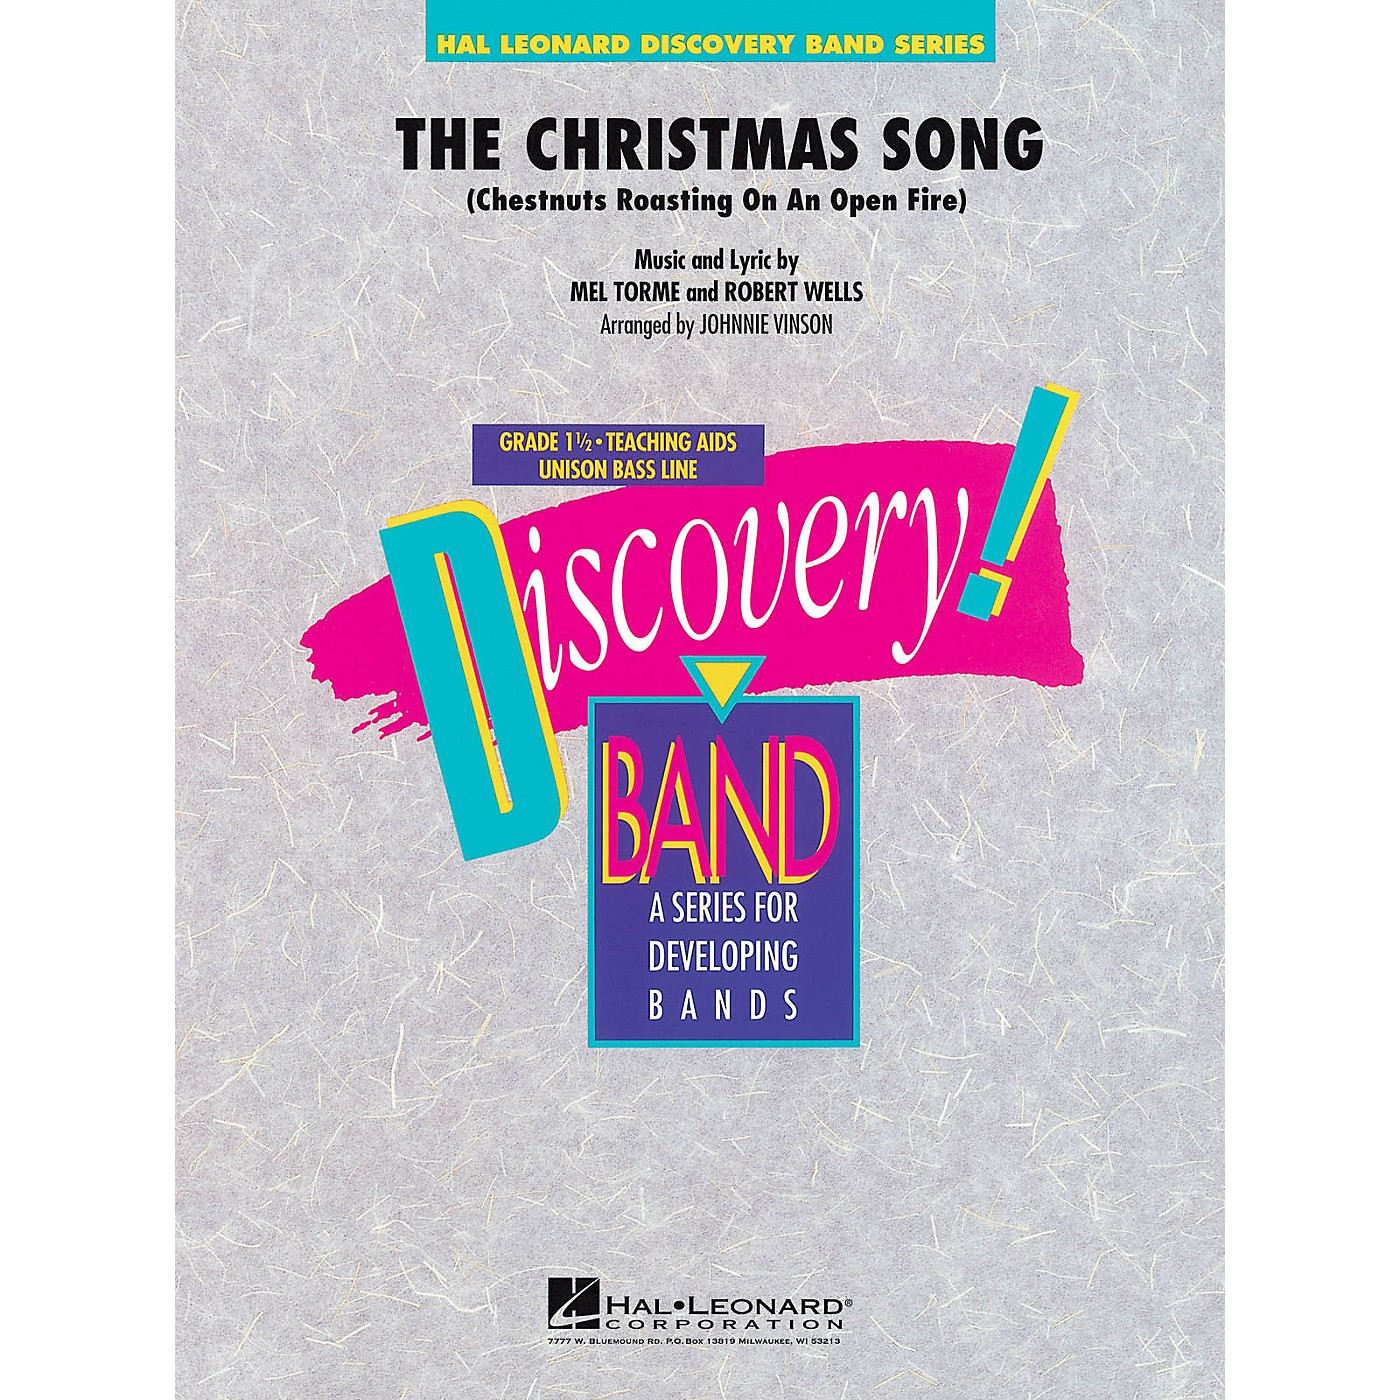 Hal Leonard The Christmas Song (Chestnuts Roasting on an Open Fire) Concert Band Level 1.5 Arranged by Johnnie Vinson thumbnail